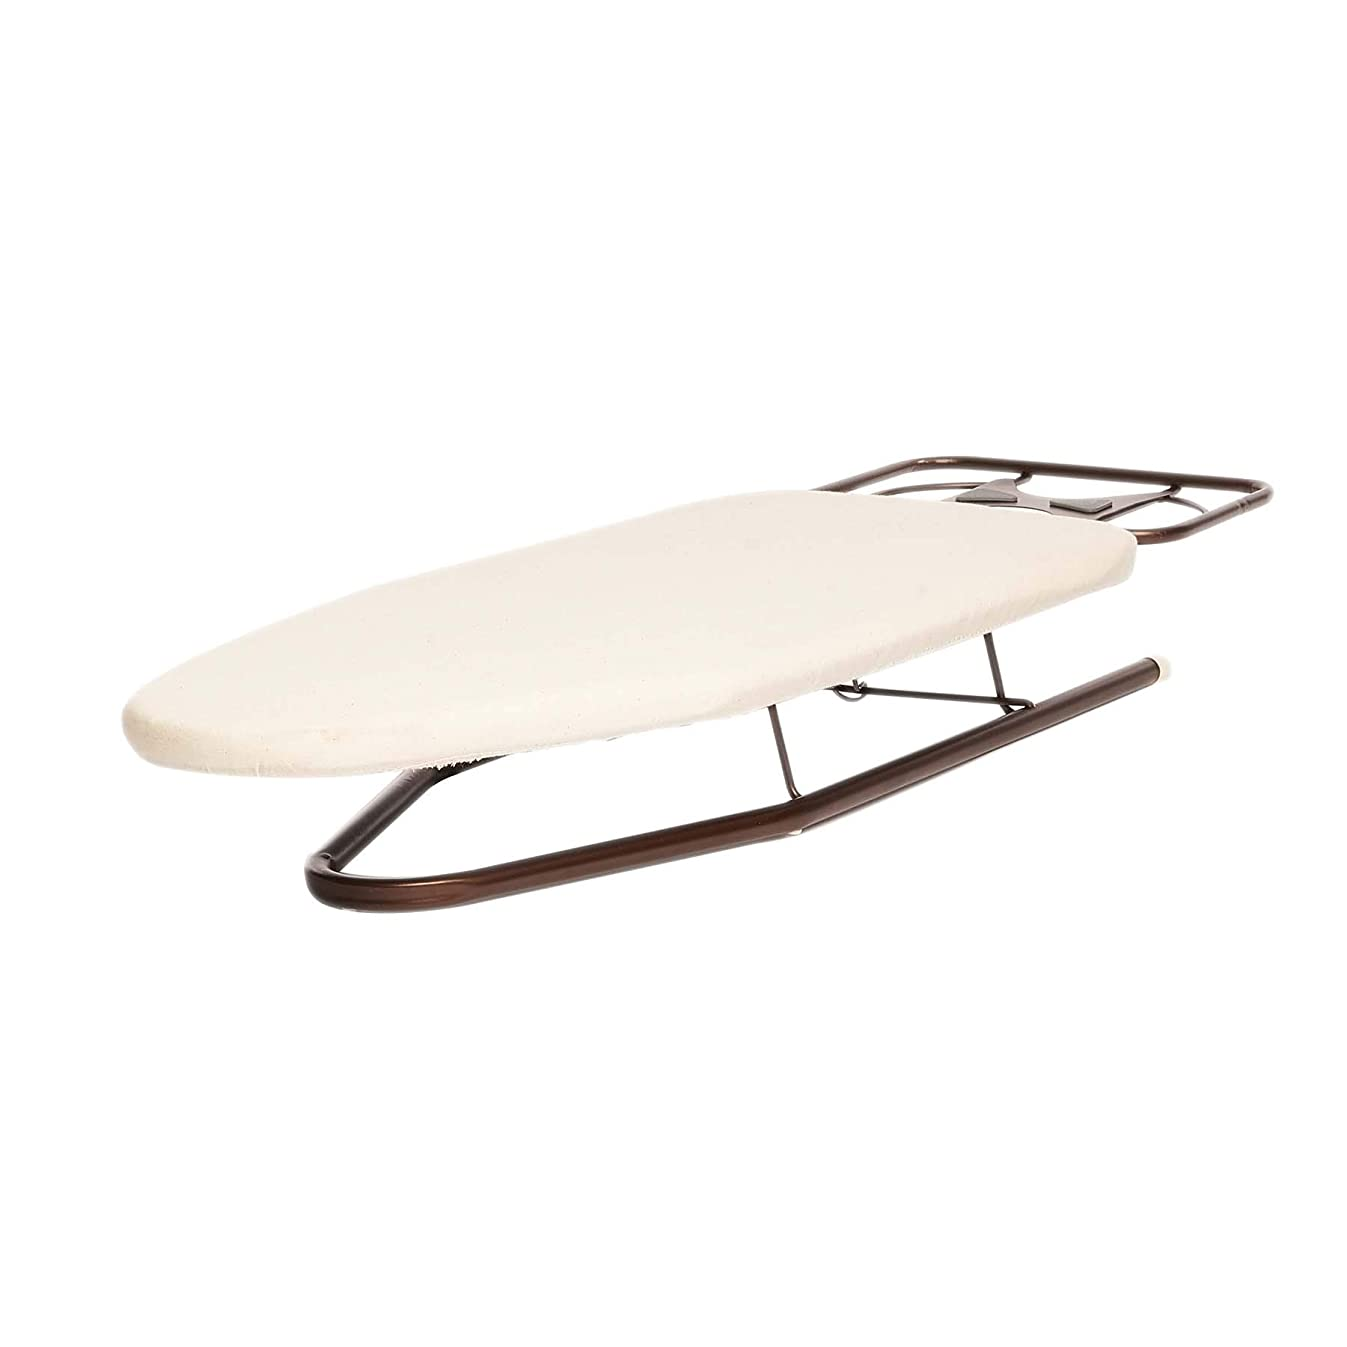 Homz Deluxe Tabletop Compact Rest, Natural Cotton Cover and Oil Rubbed Bronze Metal Legs Countertop Ironing Board, White